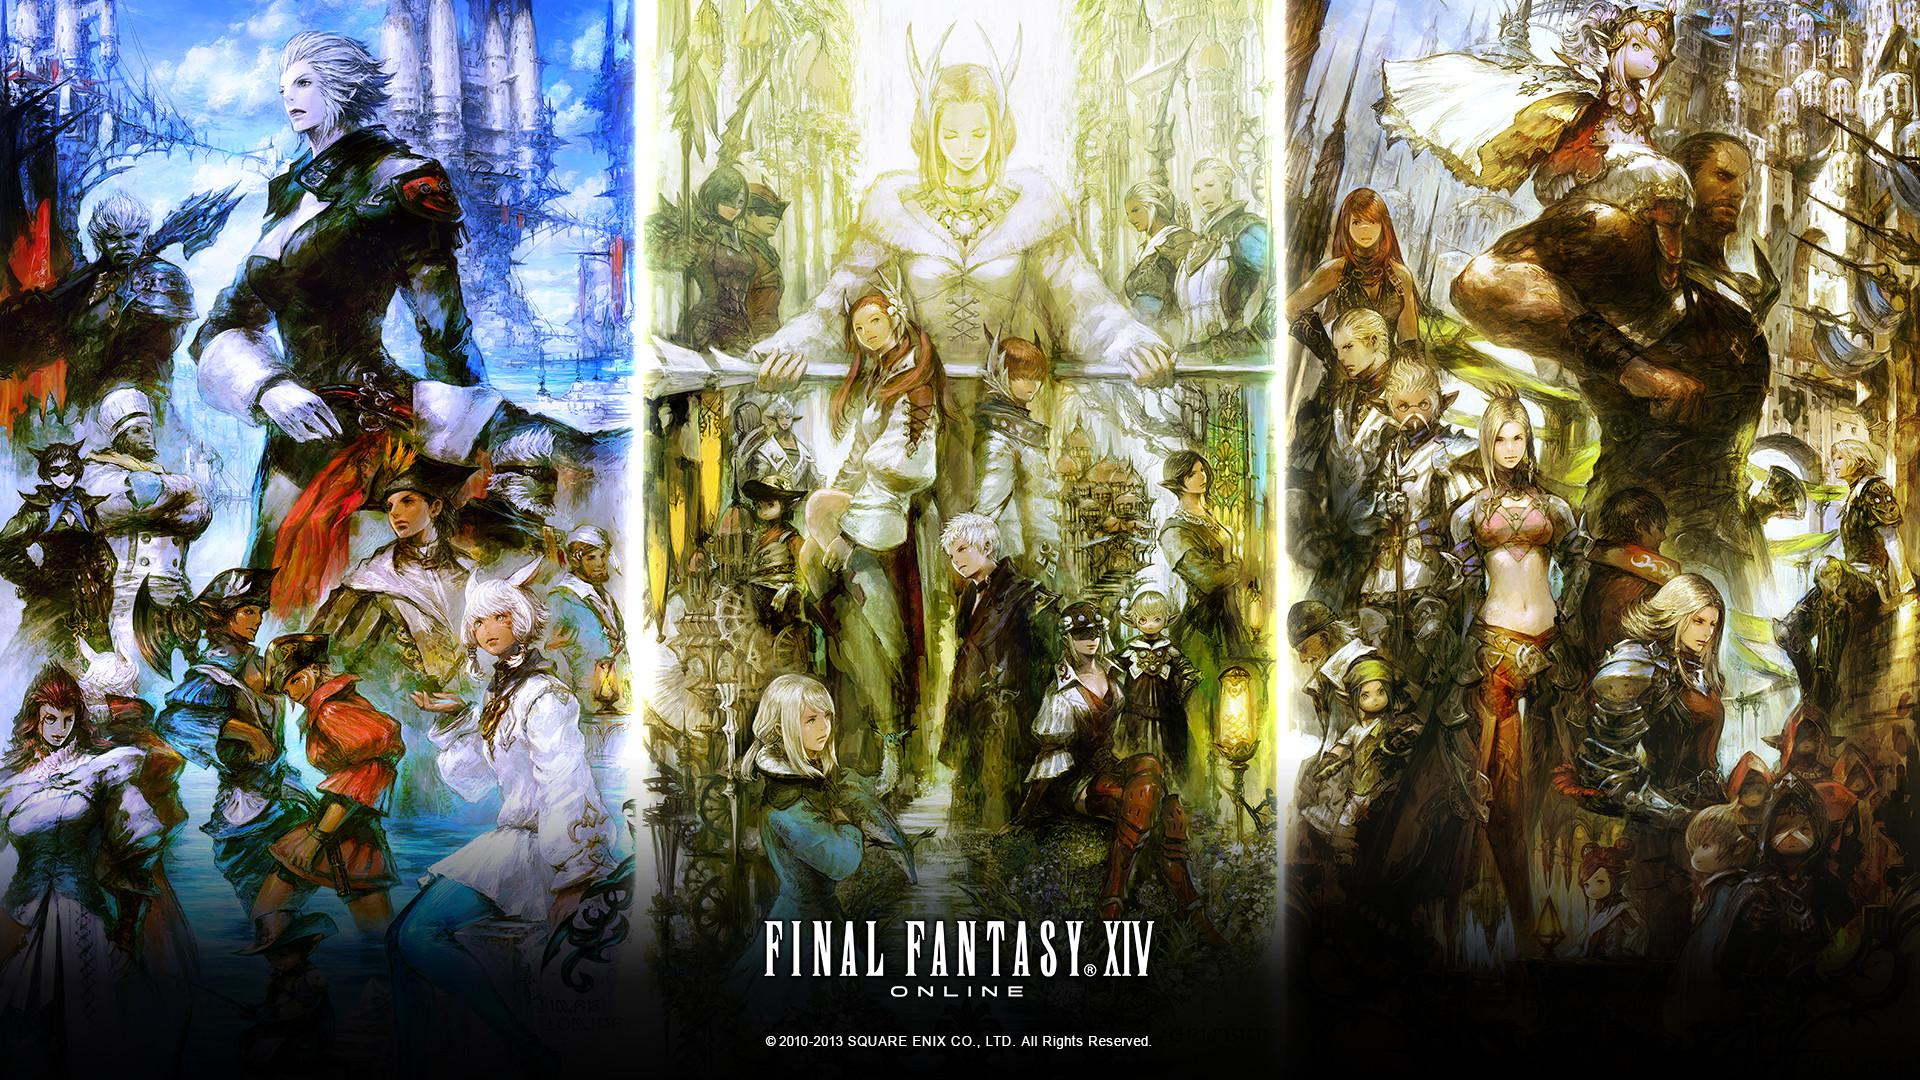 Download Final Fantasy 14 Wallpaper Hd Backgrounds Download